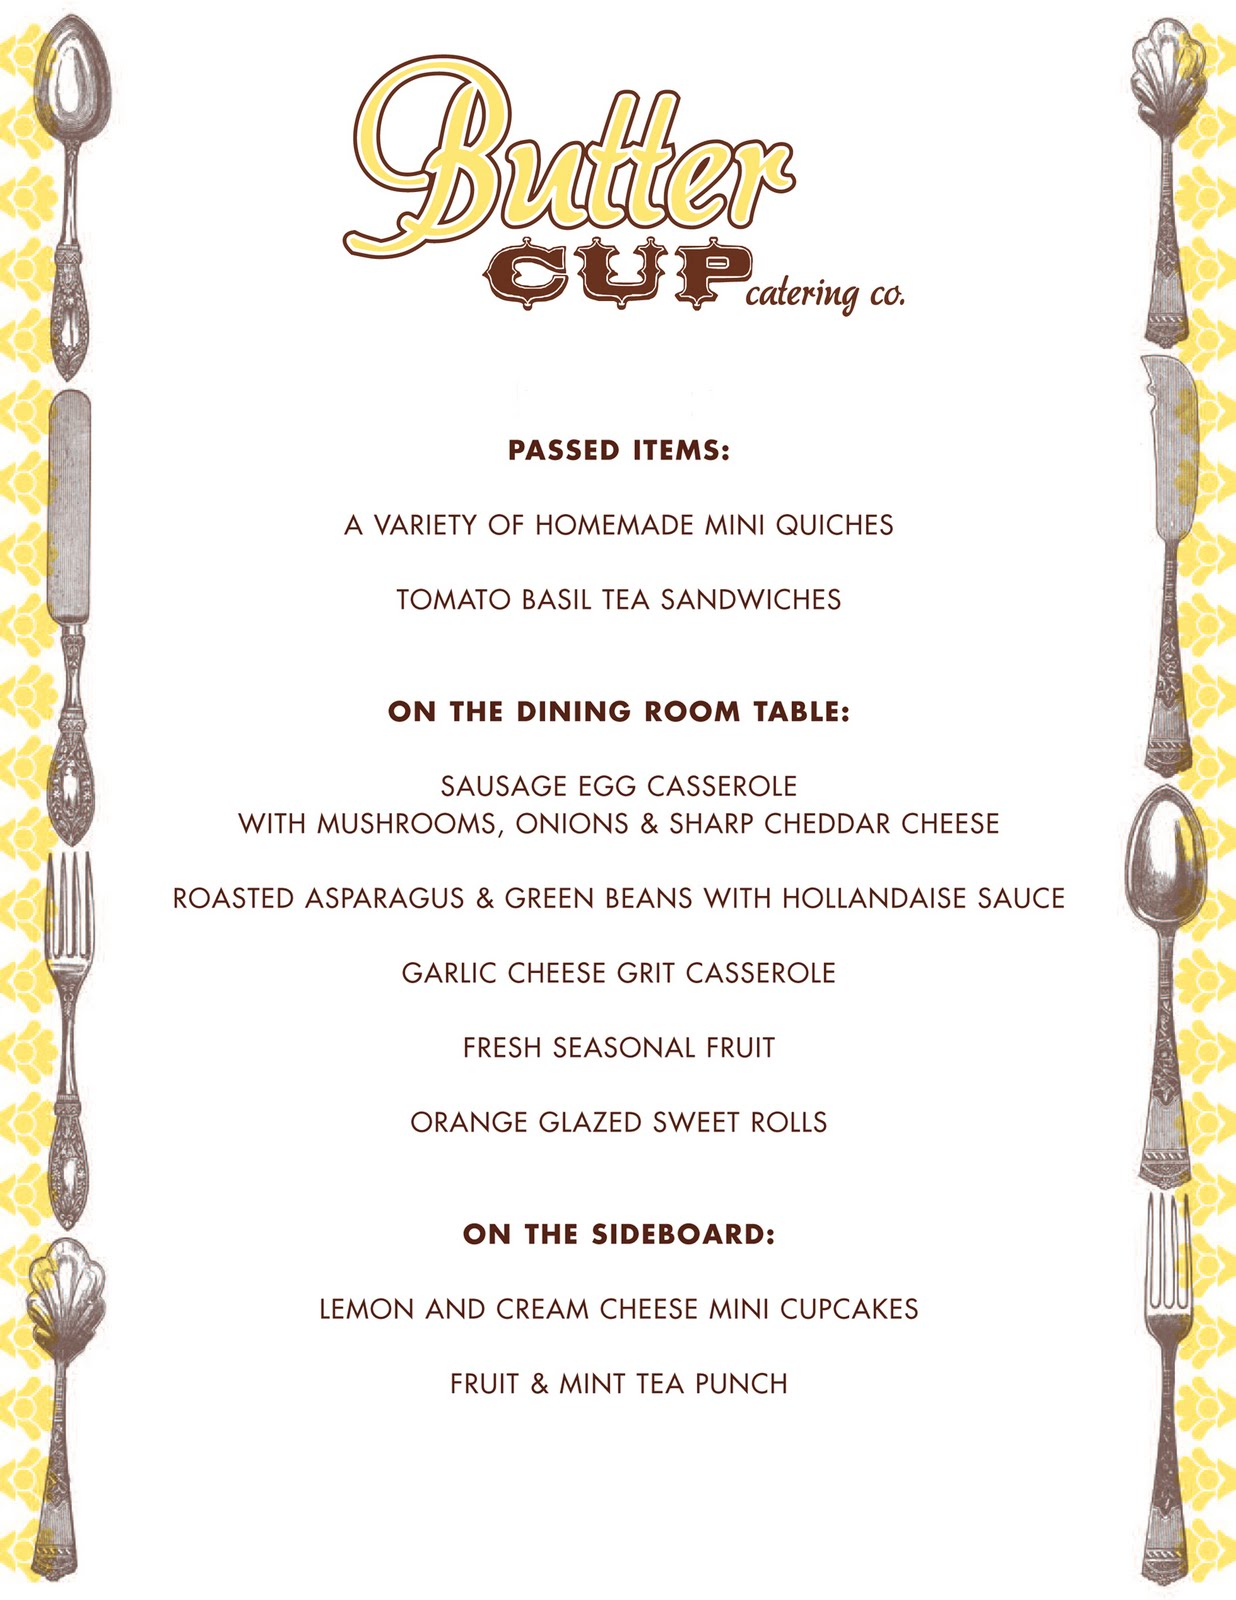 I Put Together A Truly Scrumptious Feast It Really Turned Out Well Here Is The Menu For Event Along With Of Party Pics Enjoy